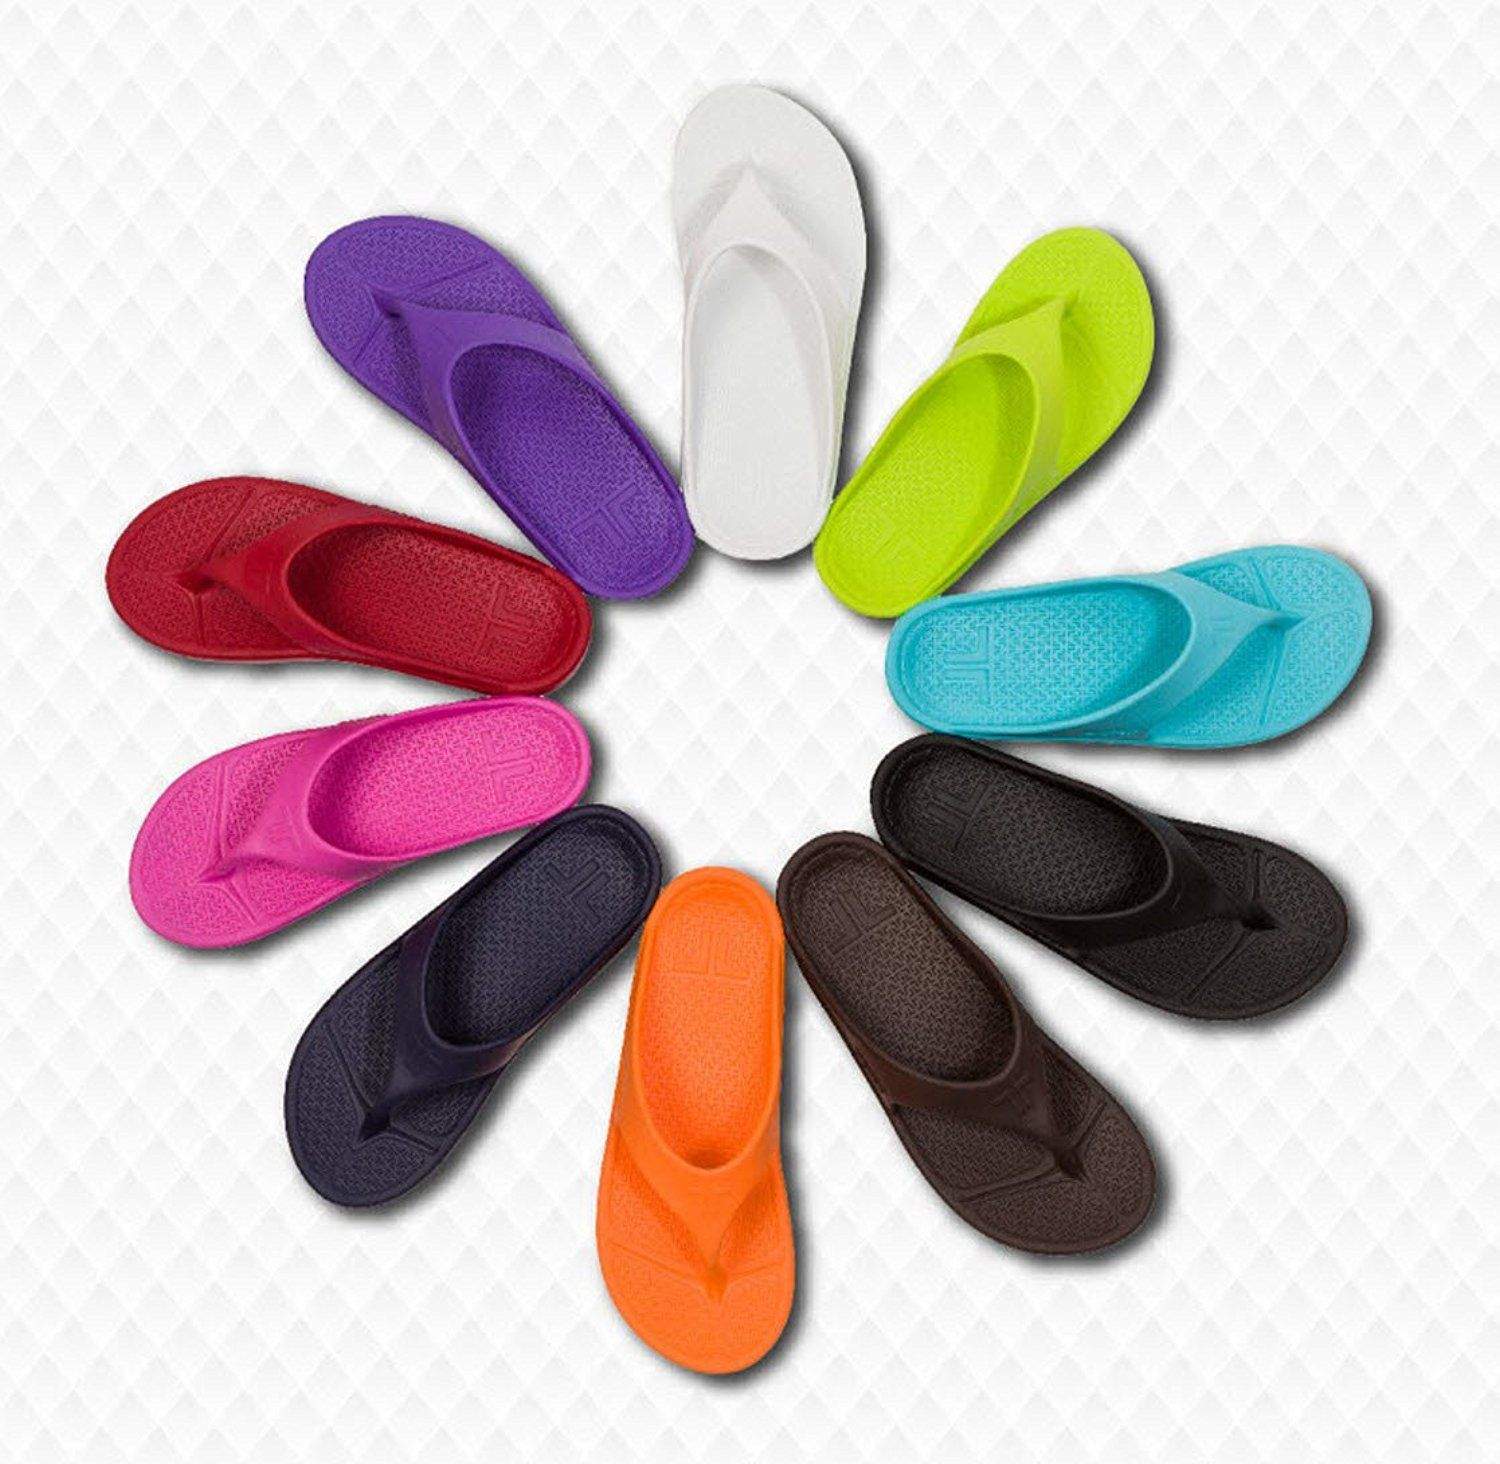 cde159a5276a Telic Unisex VOTED BEST COMFORT SHOE Arch Support Recovery Flipflop Sandal  BONUS Pumice Stone  45 Value